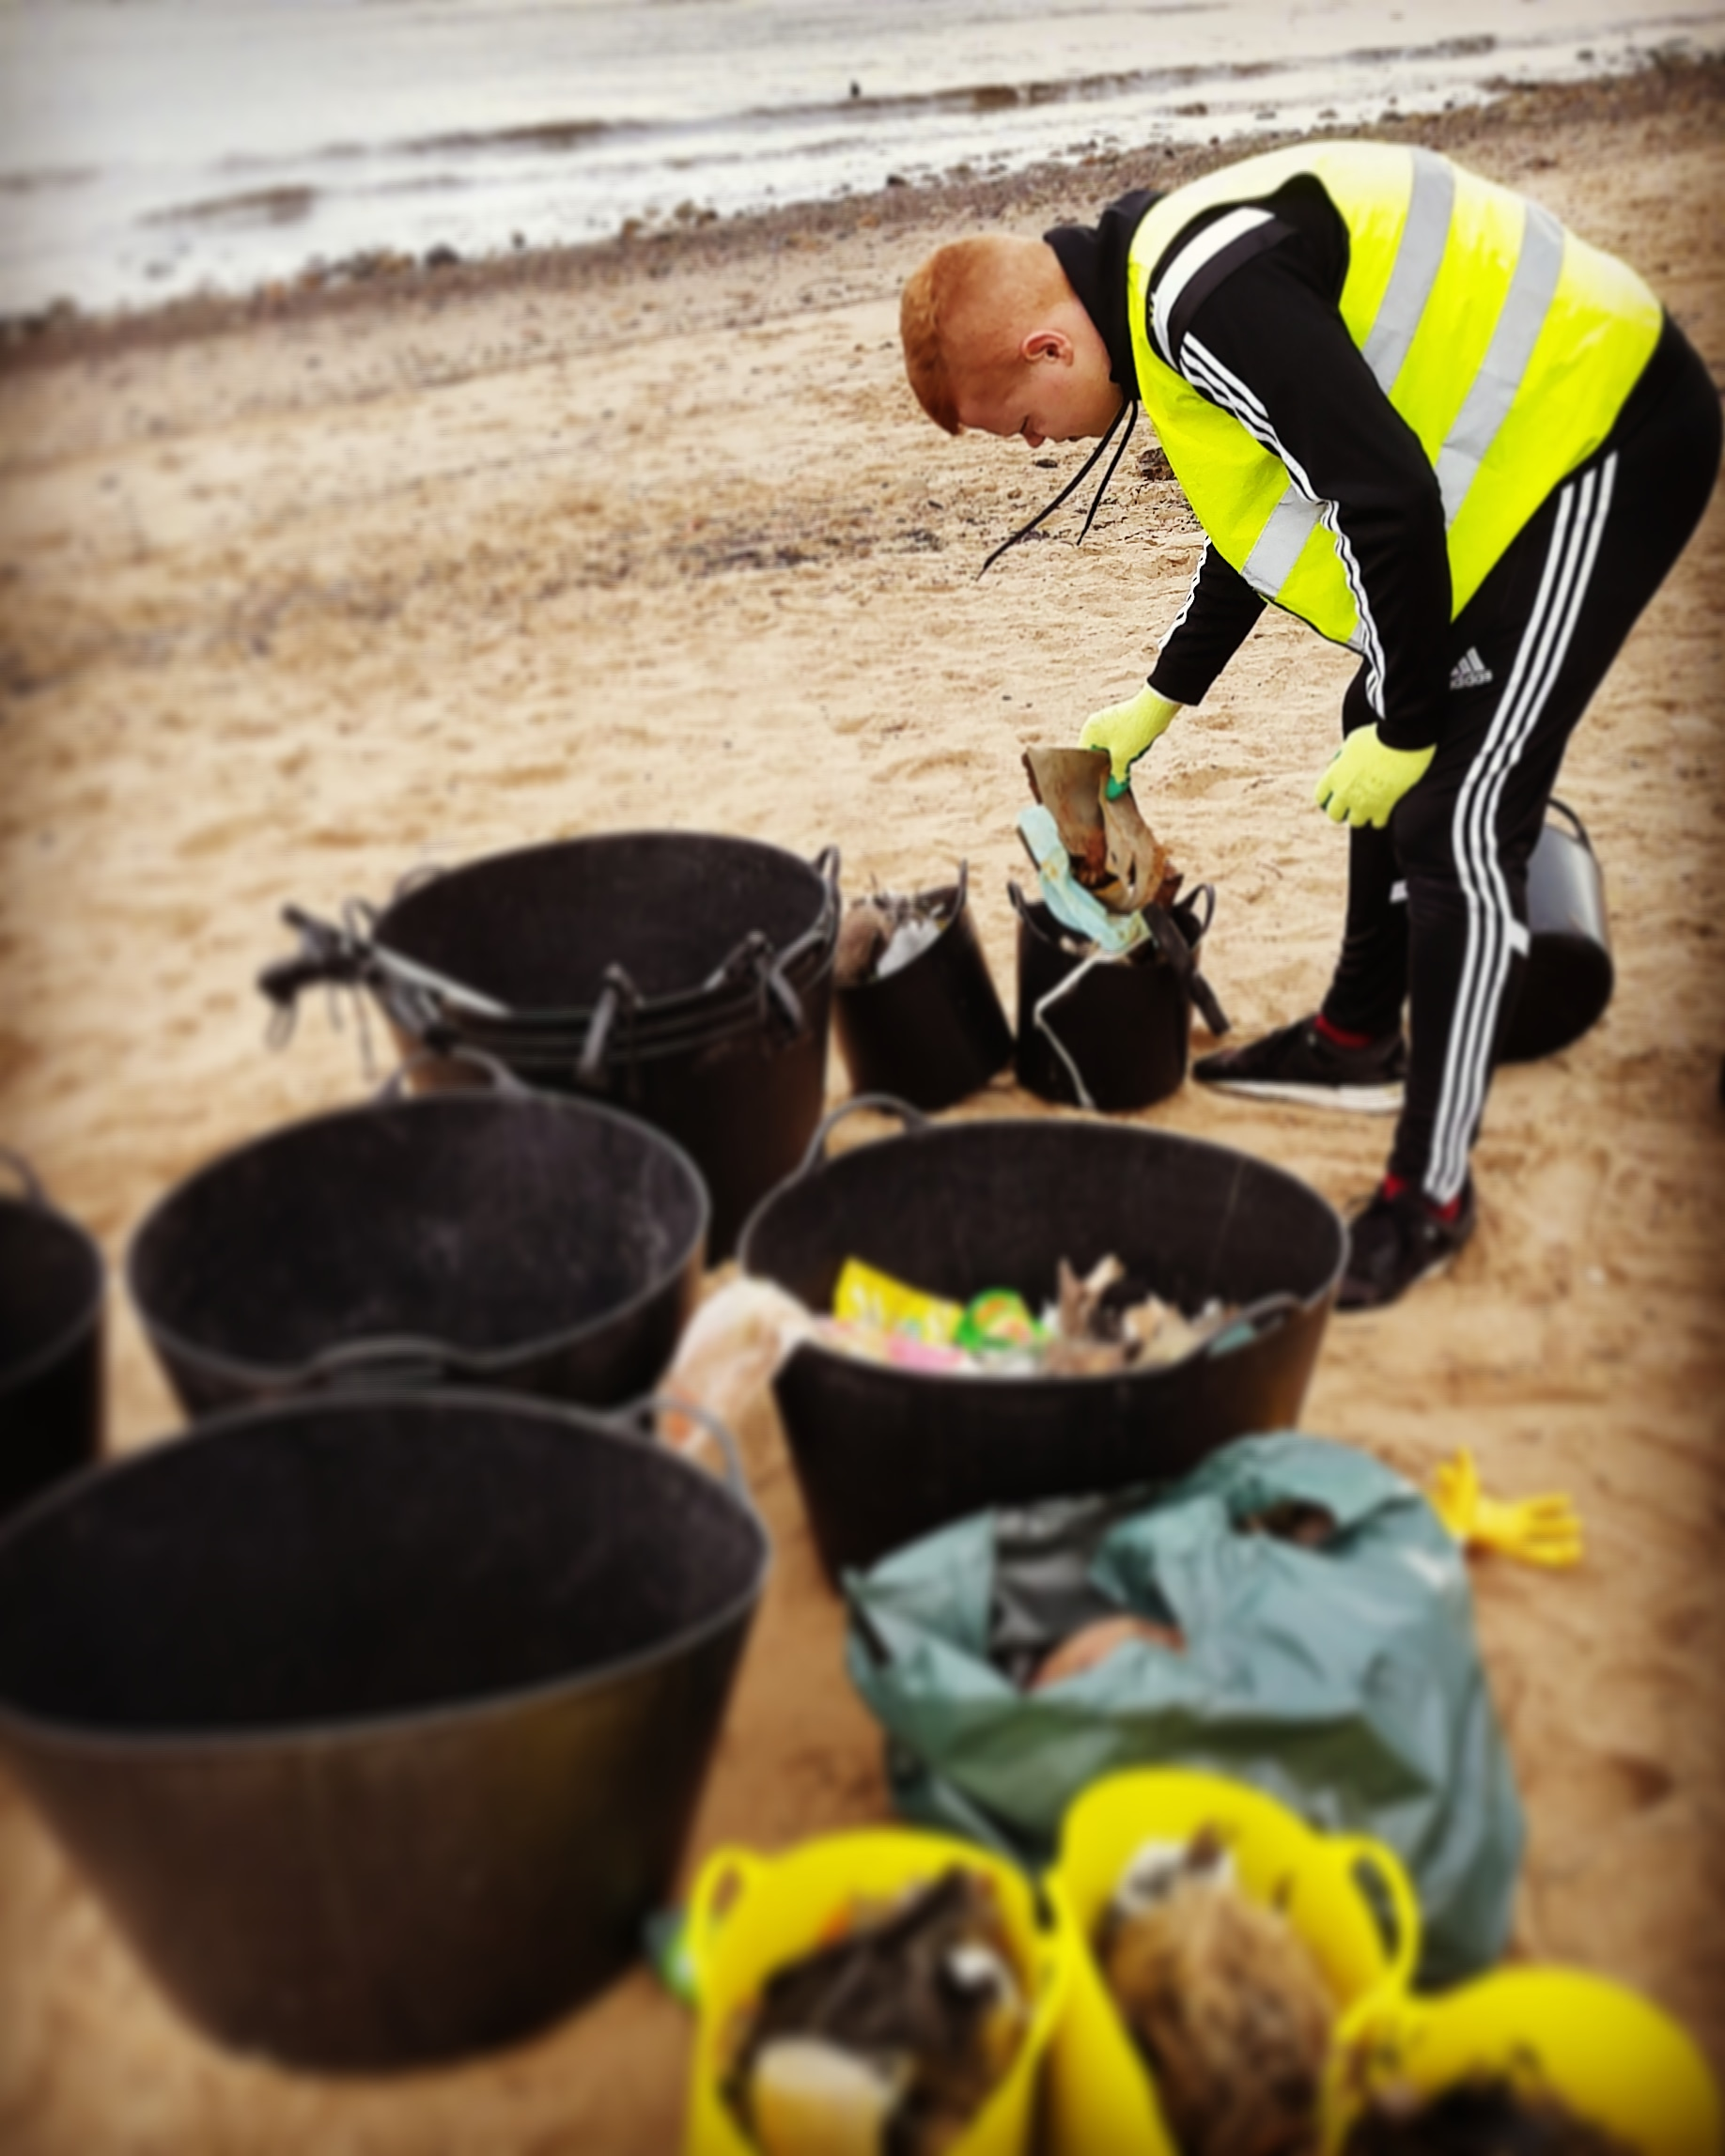 Harry sorting the beach clean trash